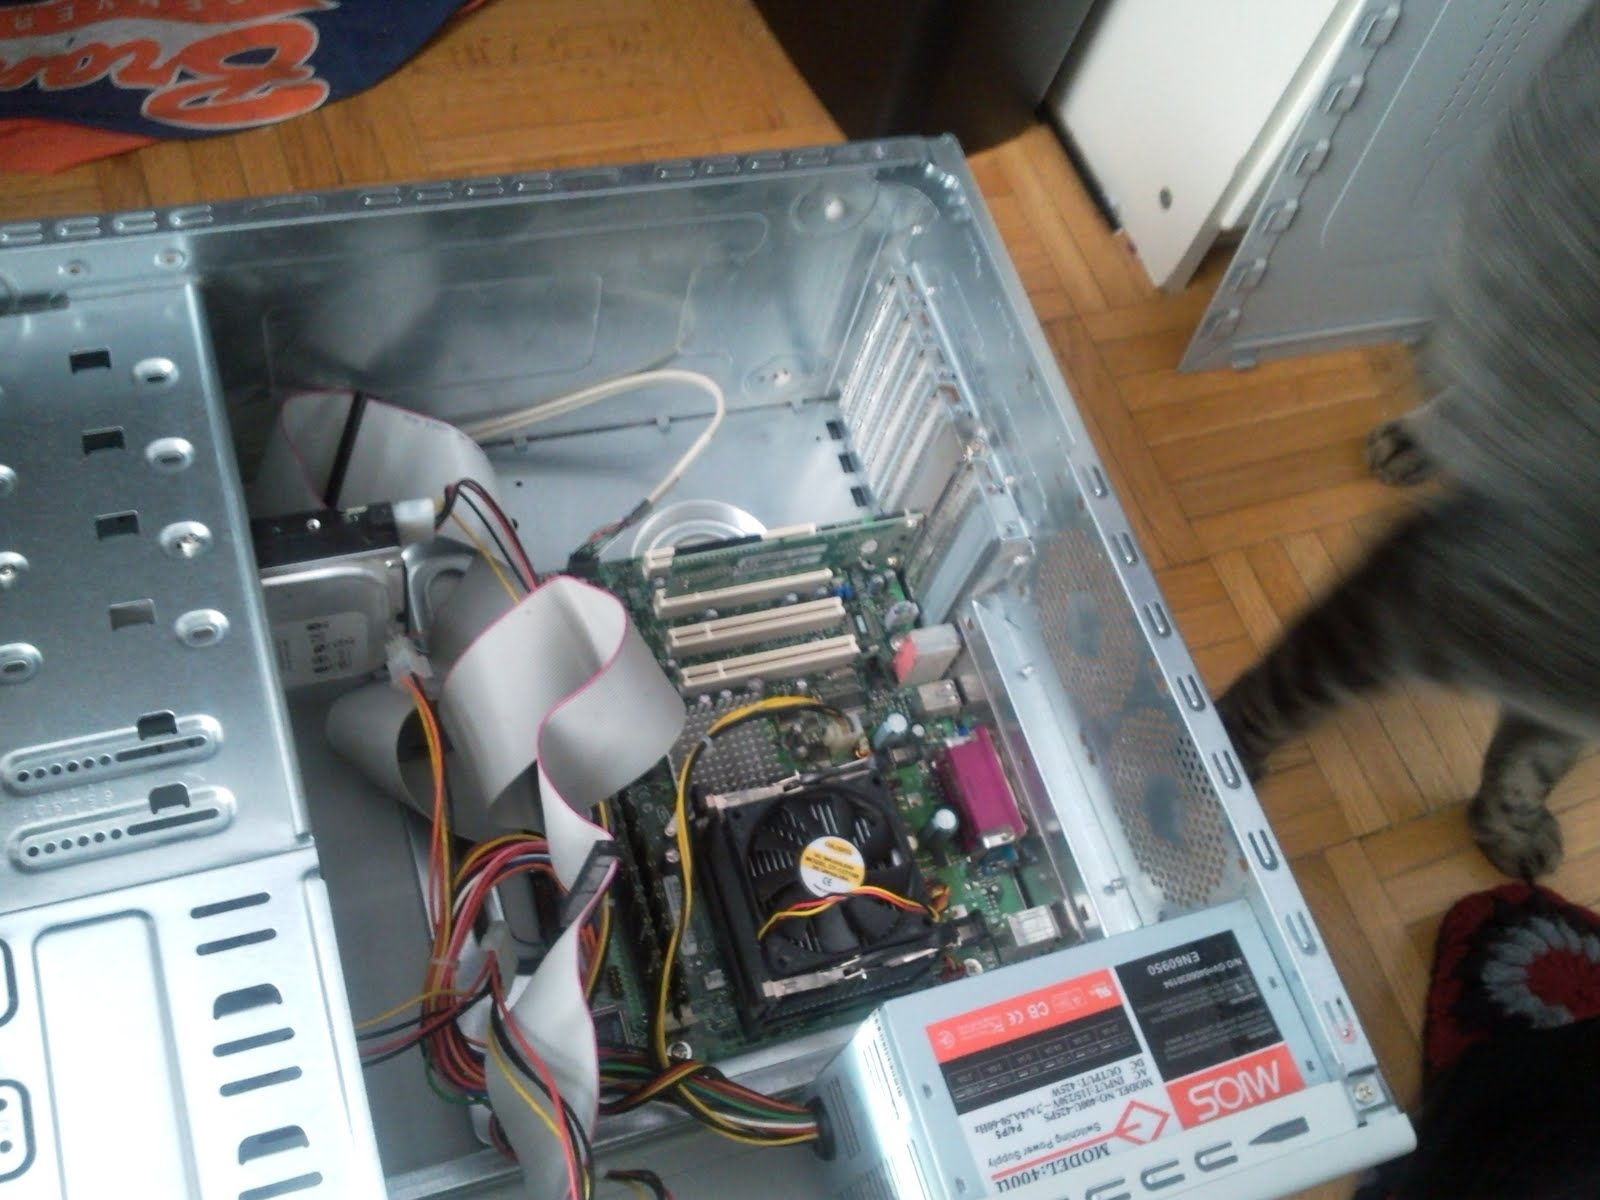 A shot of the interior. It has a pretty tiny motherboard